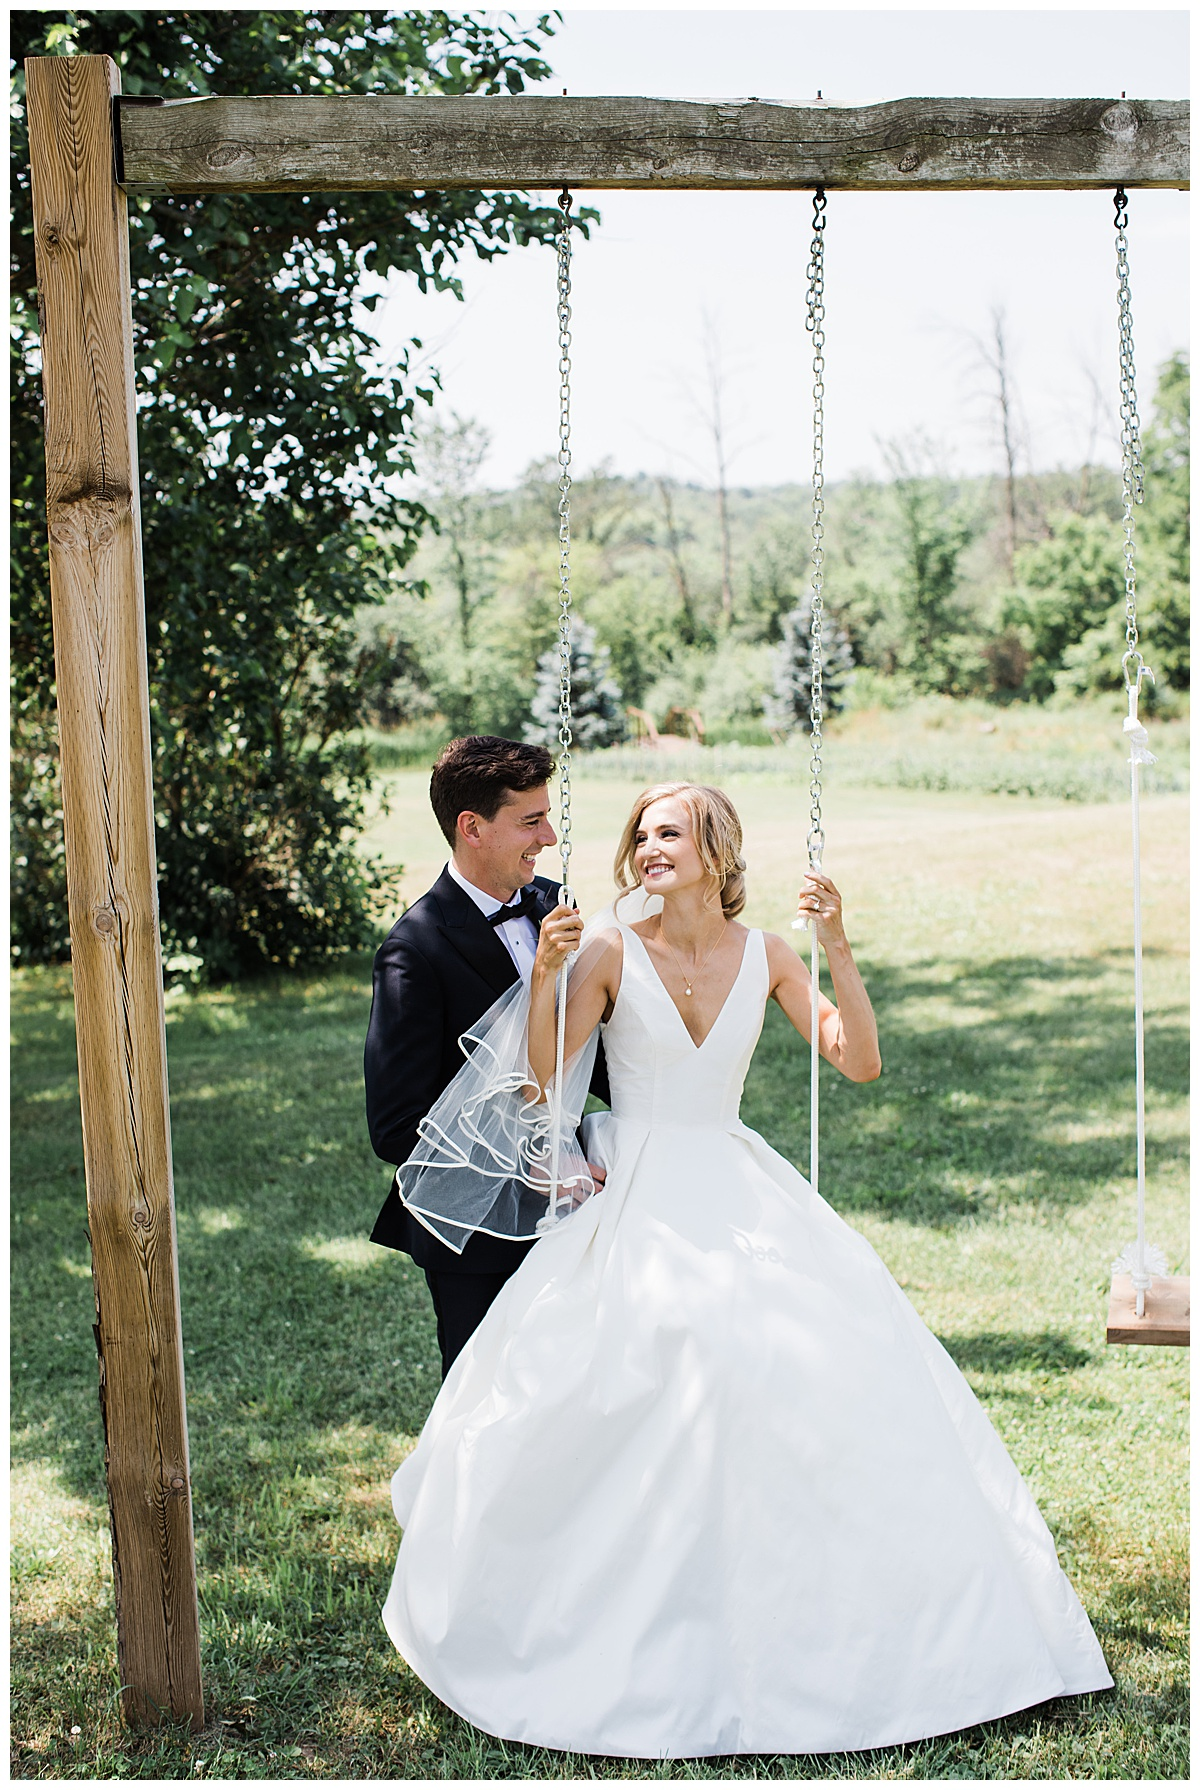 Groom smiles at bride while she sits on a swing  Georgetown, Ontario wedding  Toronto wedding photographer  3photography